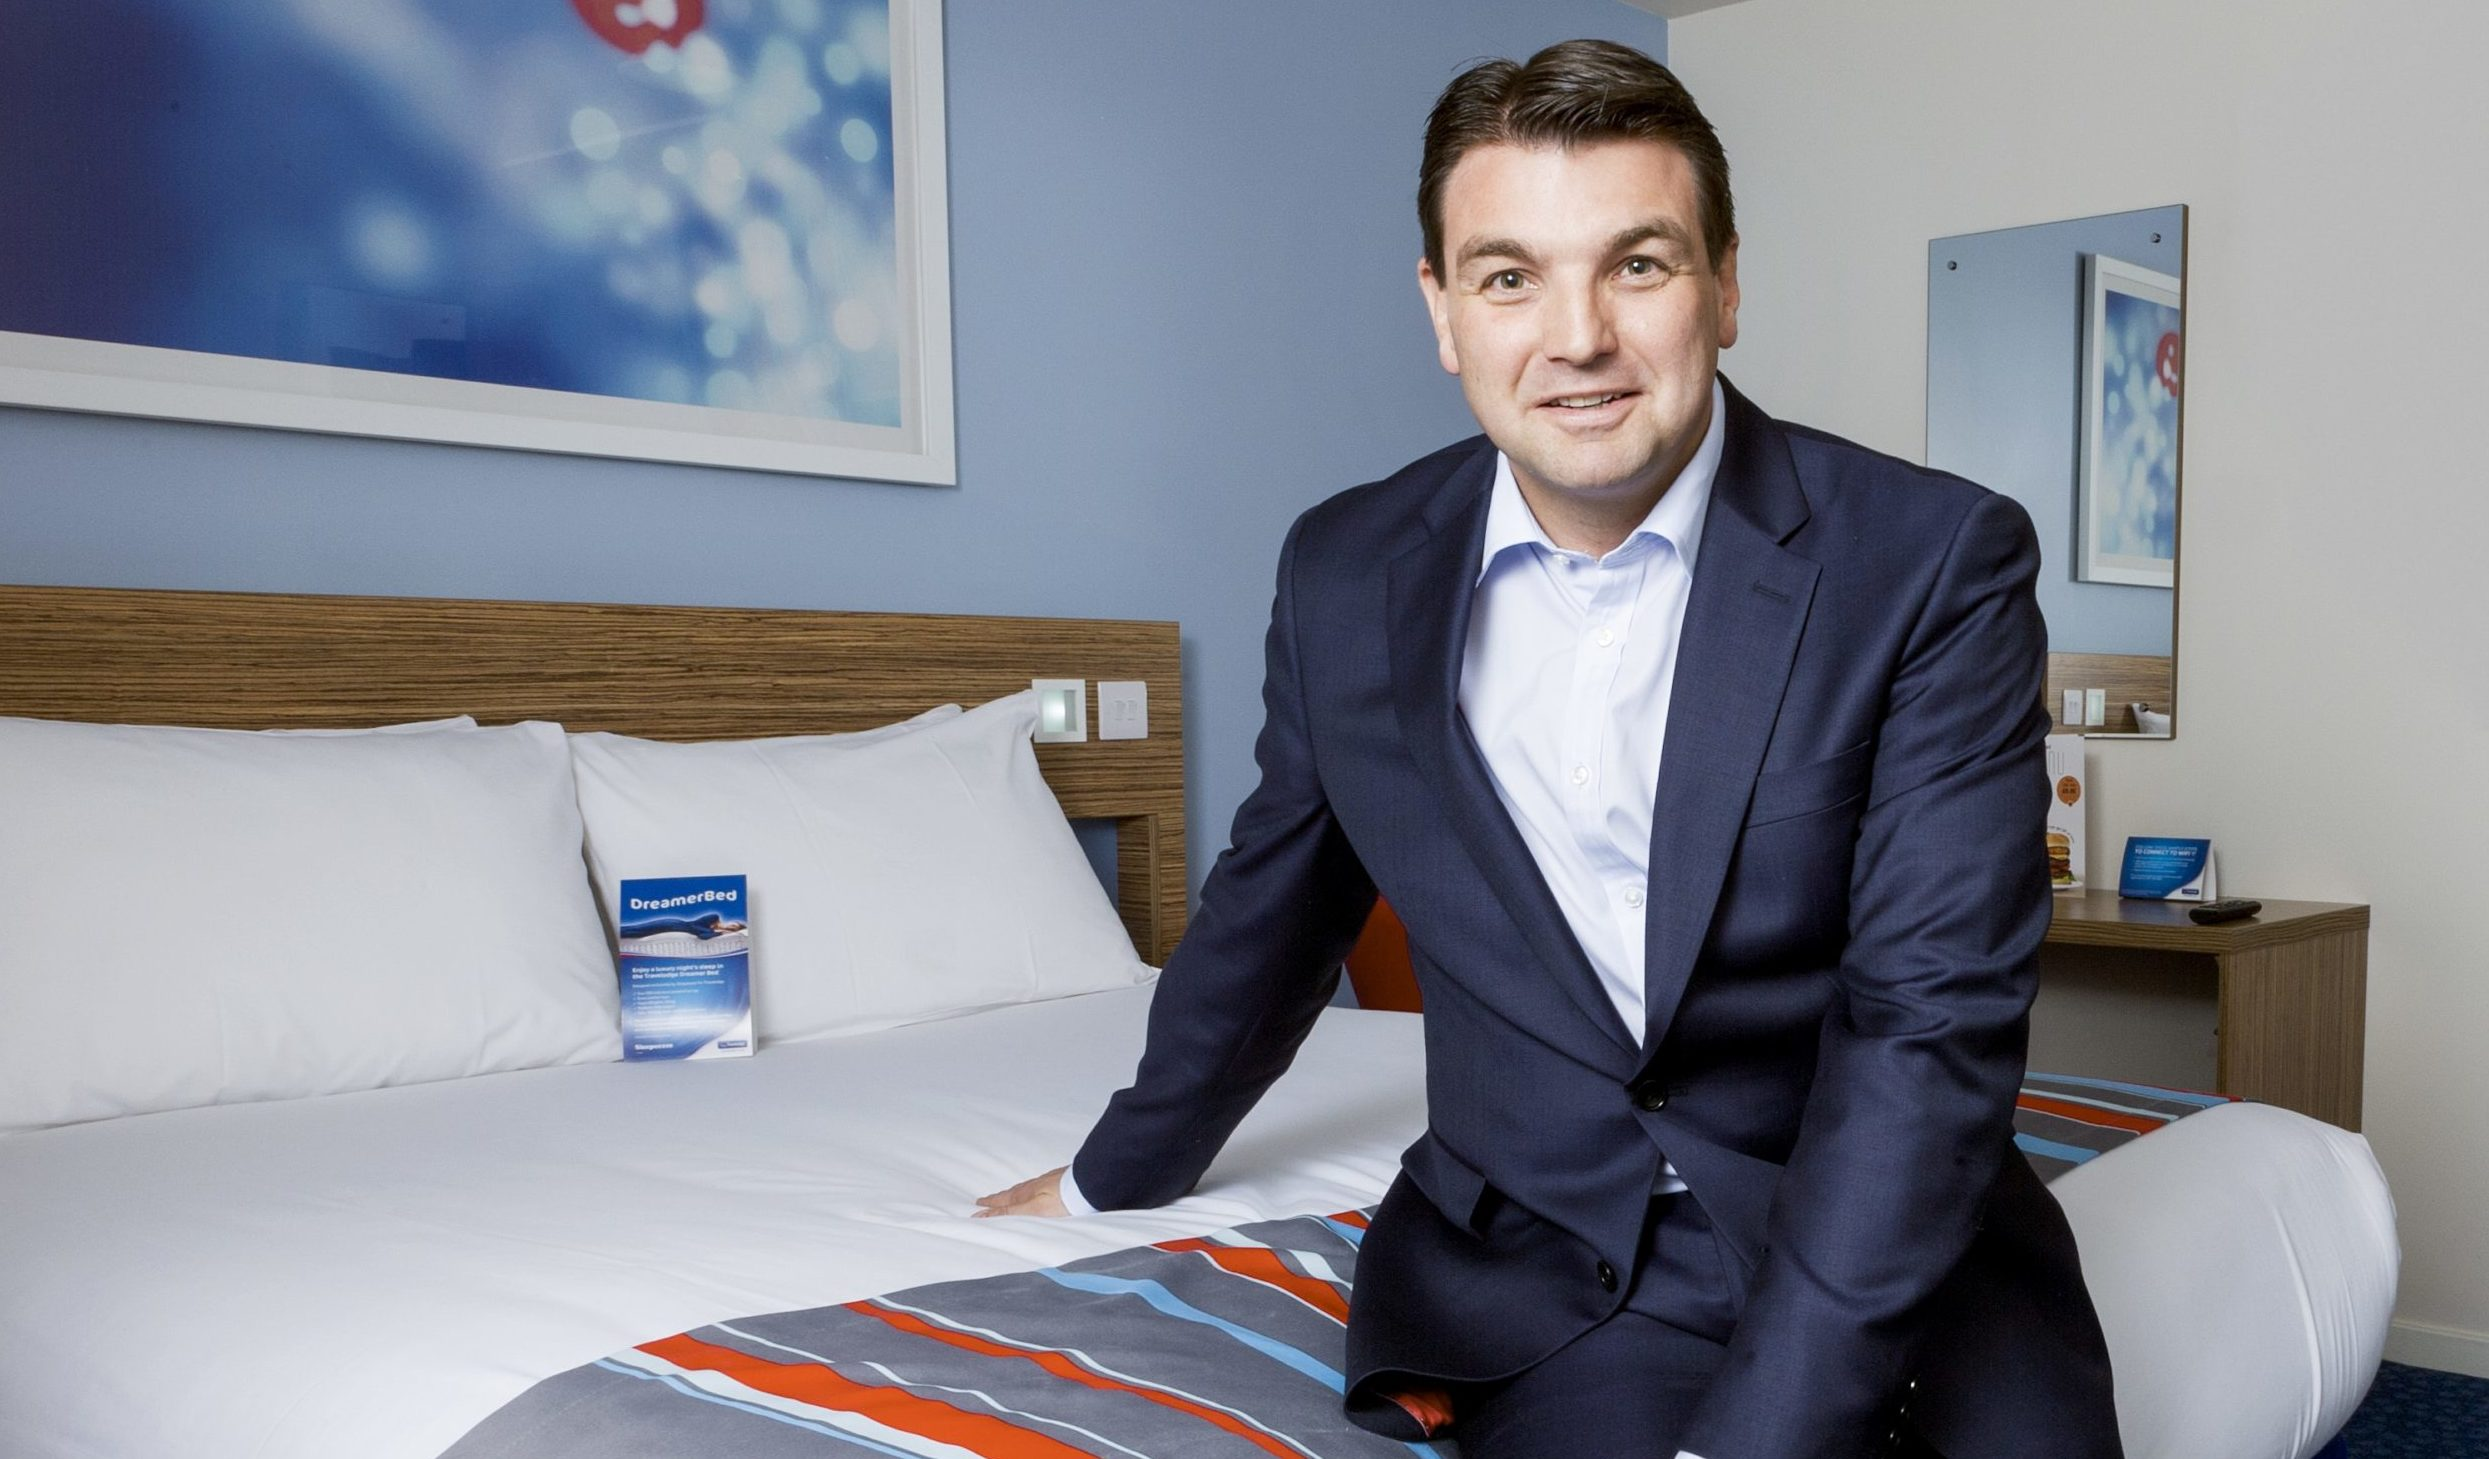 Travelodge chief executive Peter Gowers